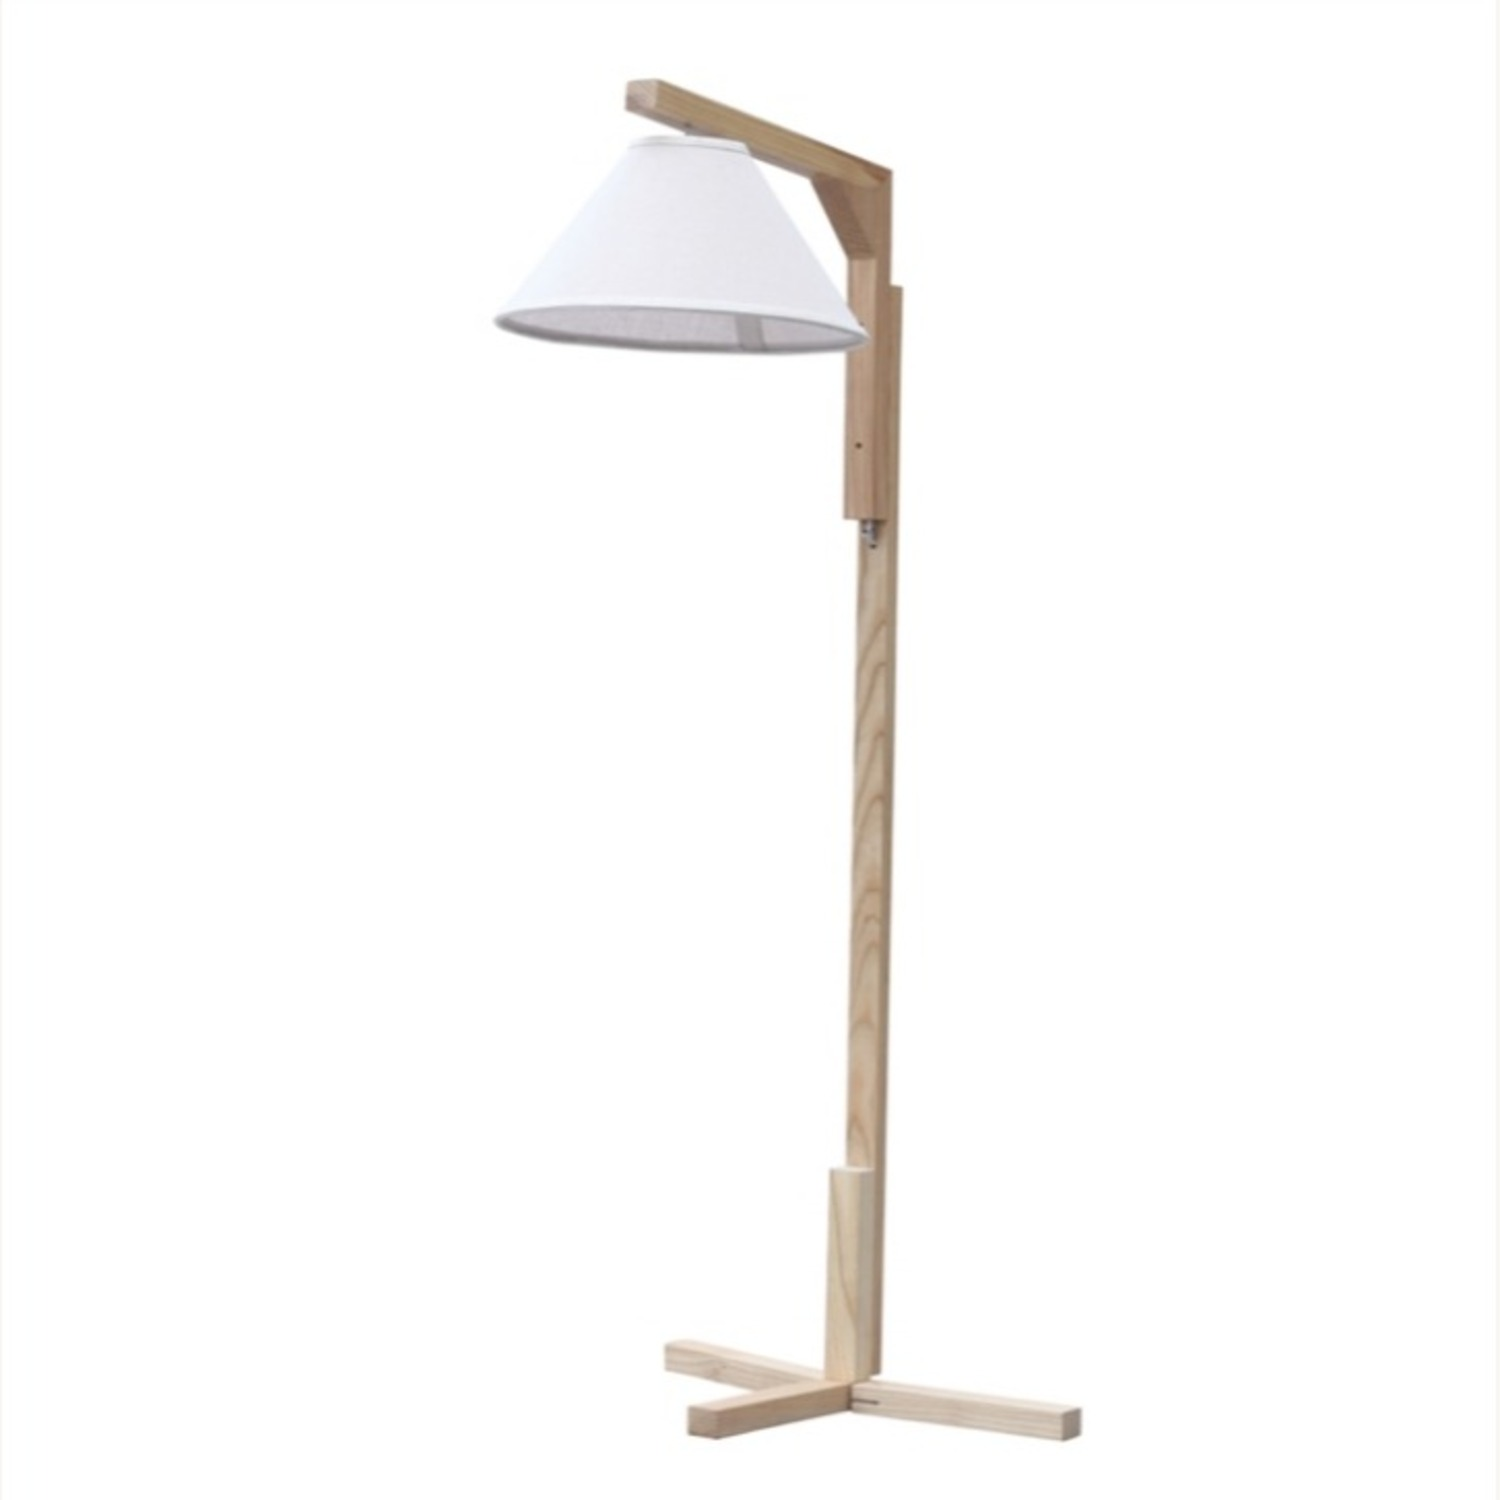 Spiral Floor Lamp In Natural Wood Finish - image-2